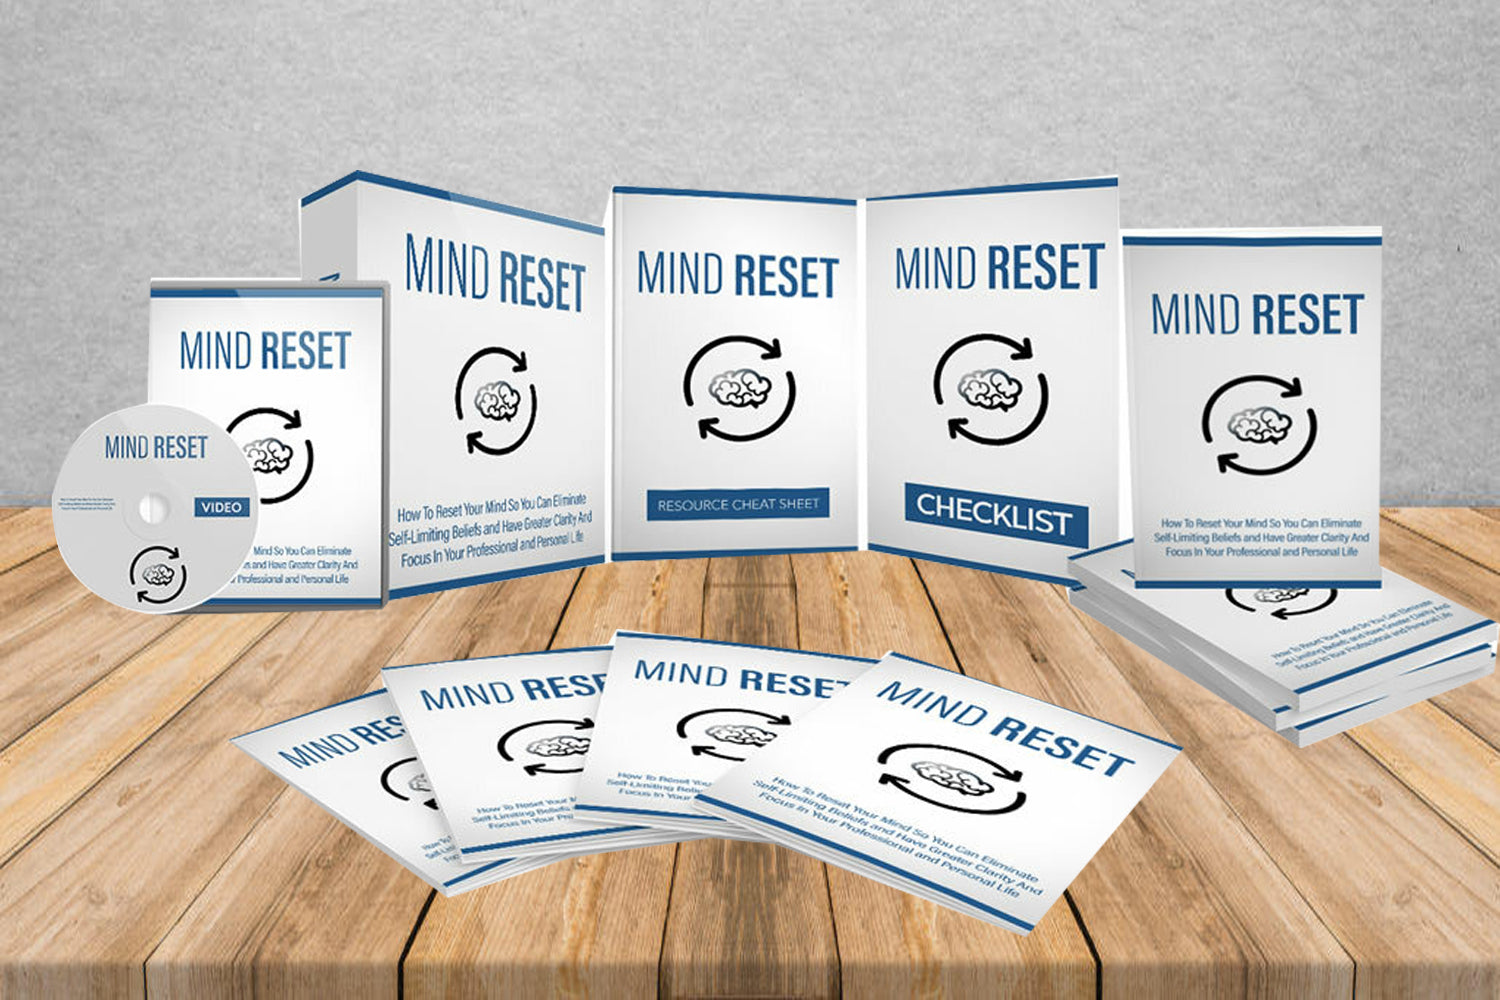 Mind Reset Video Upgrade, We All Have Goals And Aims, And We All Have An Idea Of What We Would Like Our Lives To Be Like